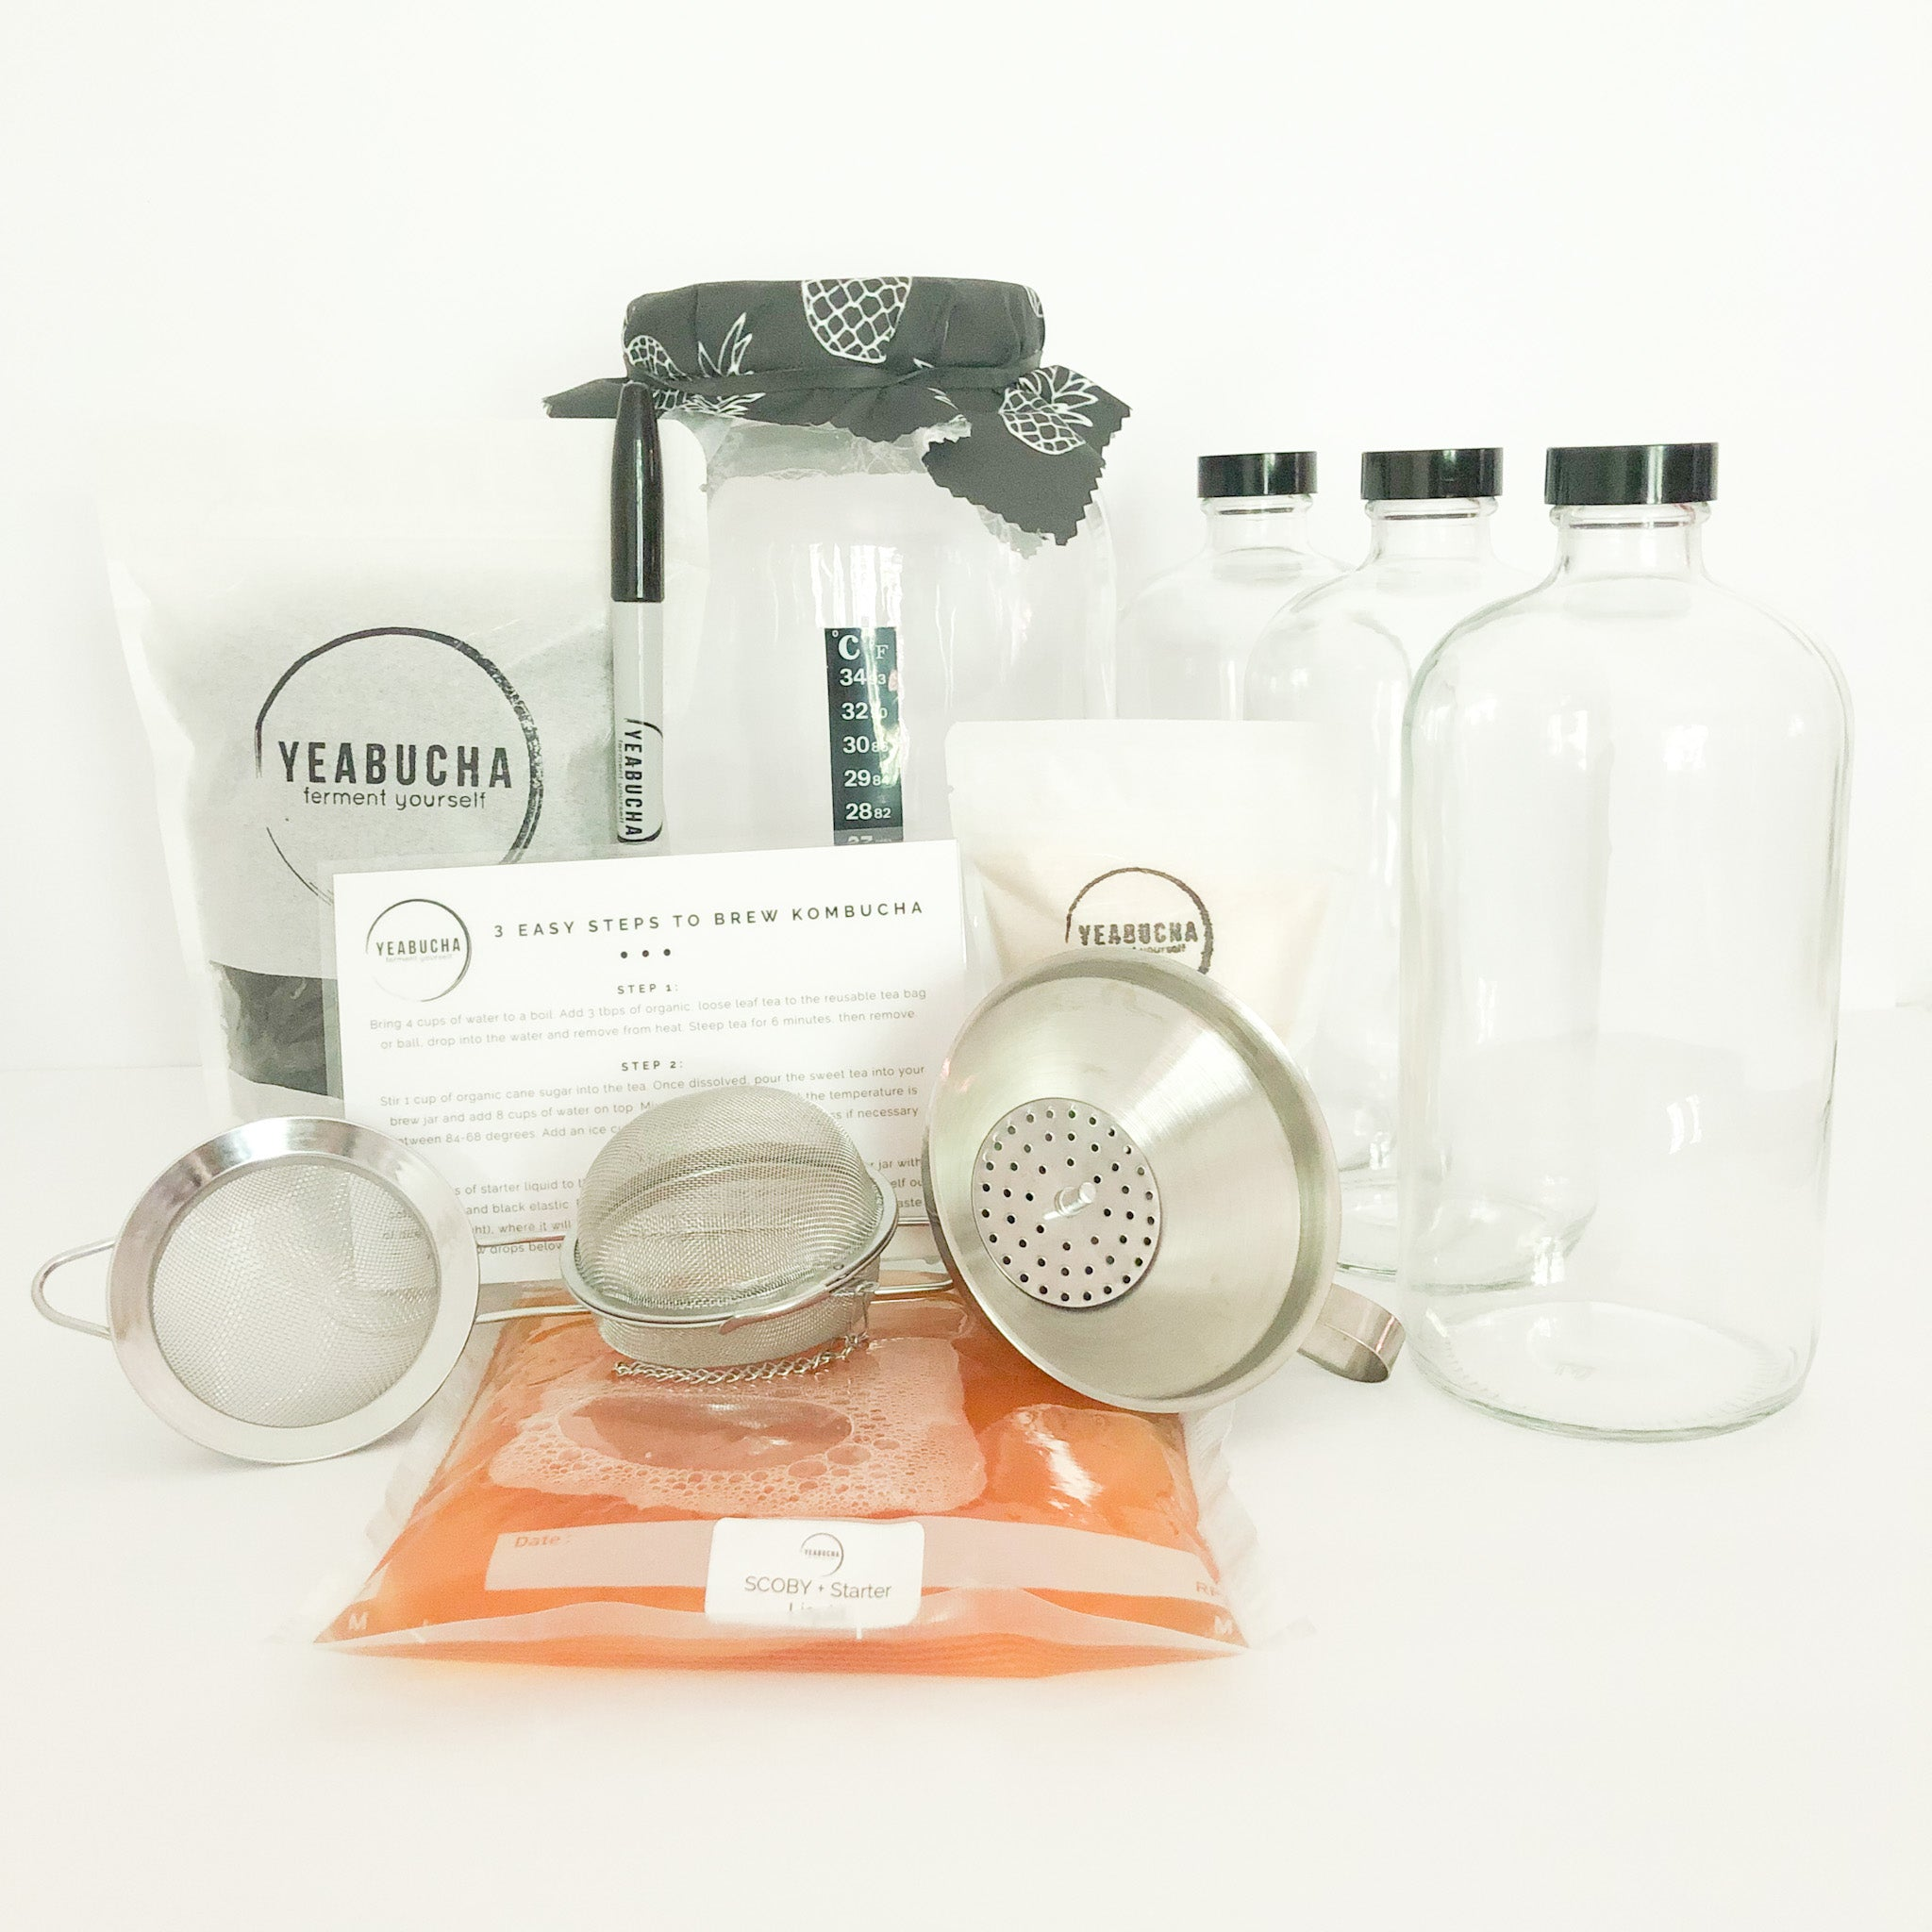 Deluxe Kombucha Home Brew Kit